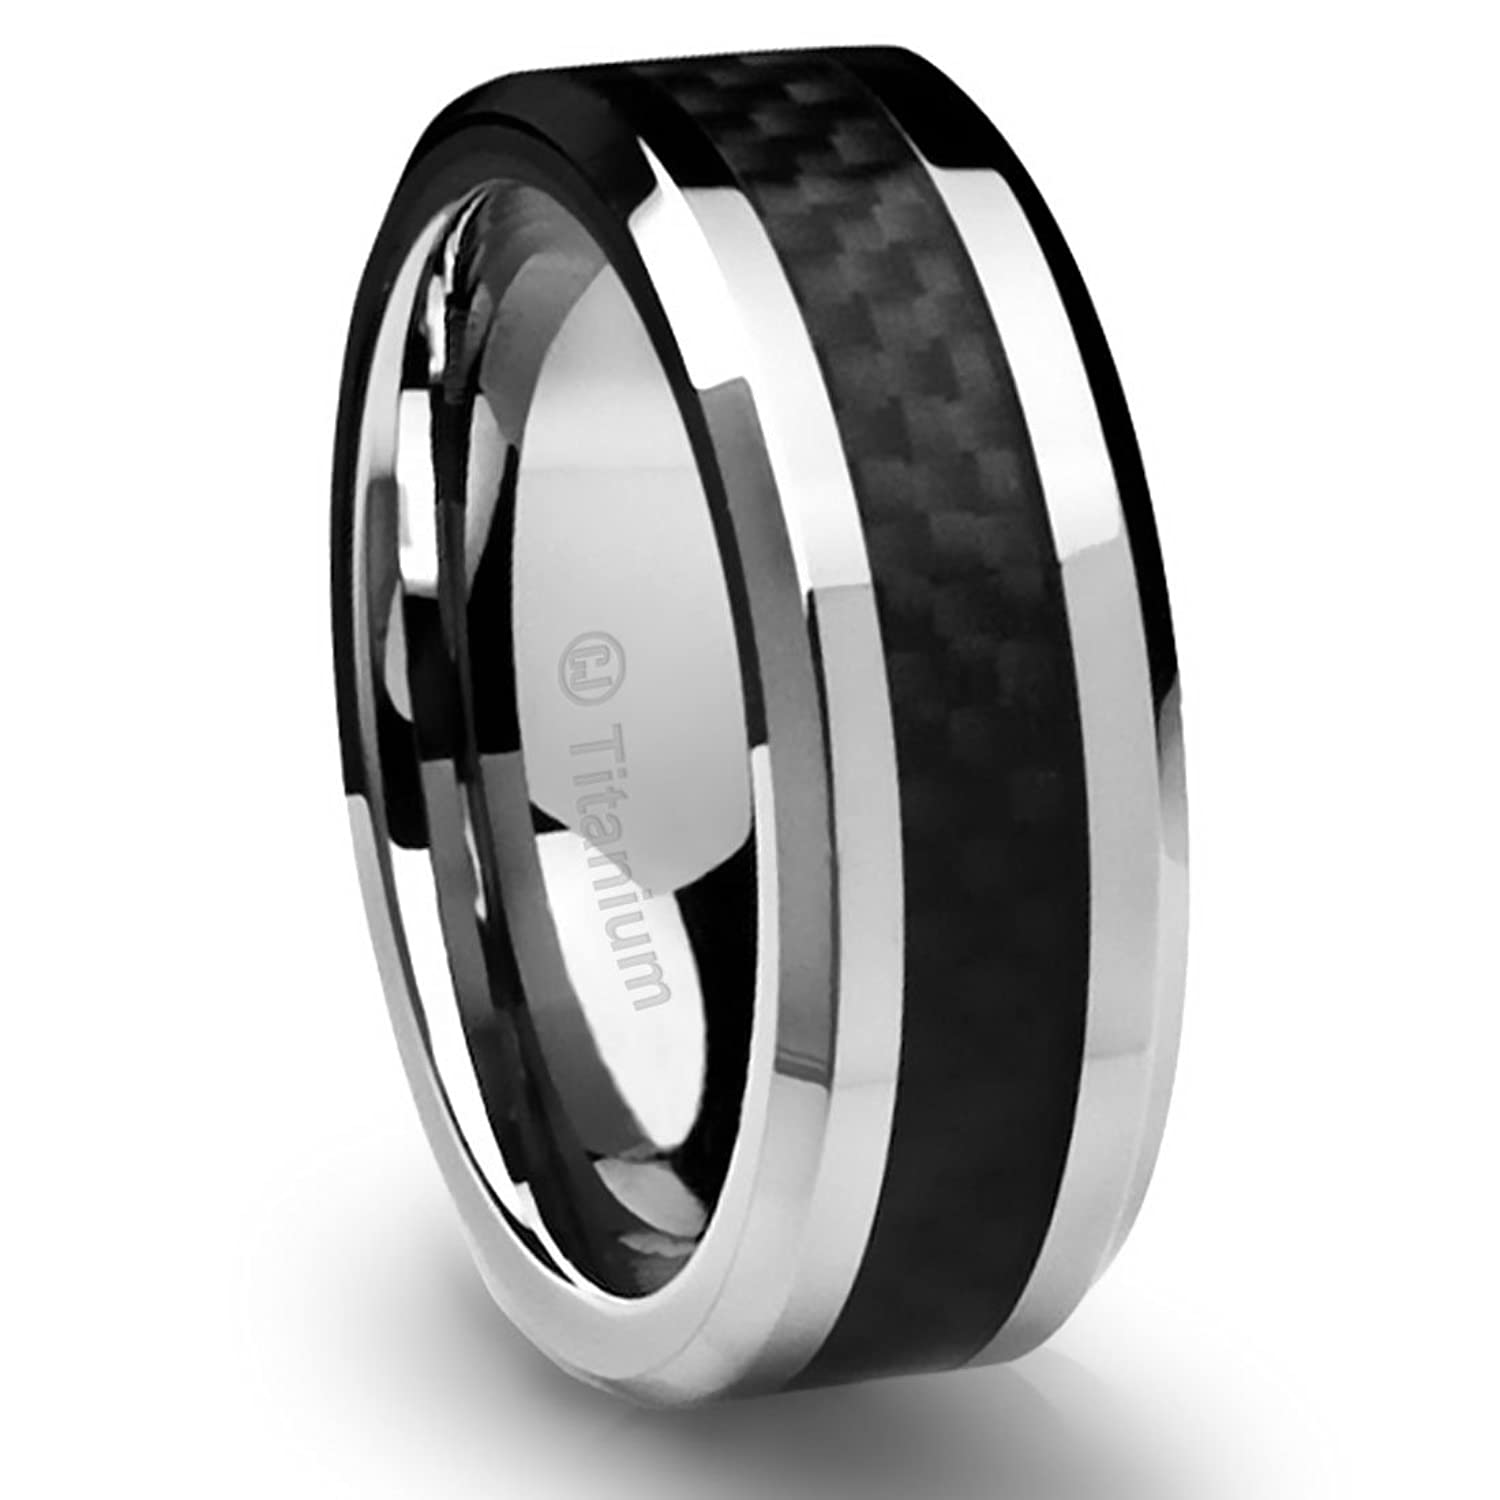 8mm mens titanium ring wedding band black carbon fiber inlay and beveled edges amazoncom - Black Mens Wedding Rings